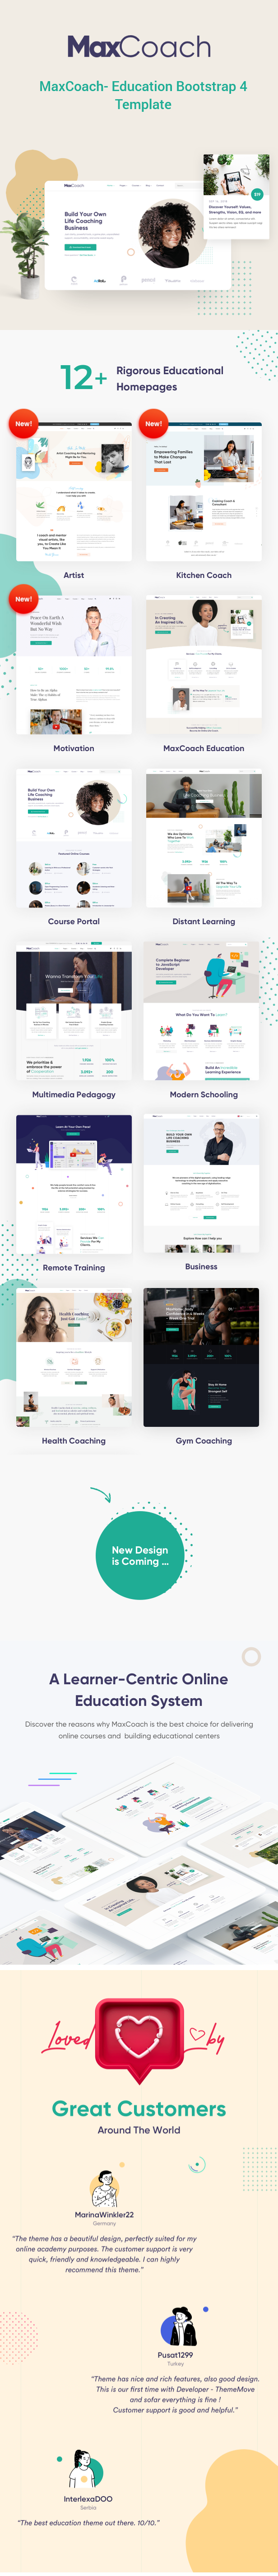 MaxCoach - Education Bootstrap 4 Template - 2